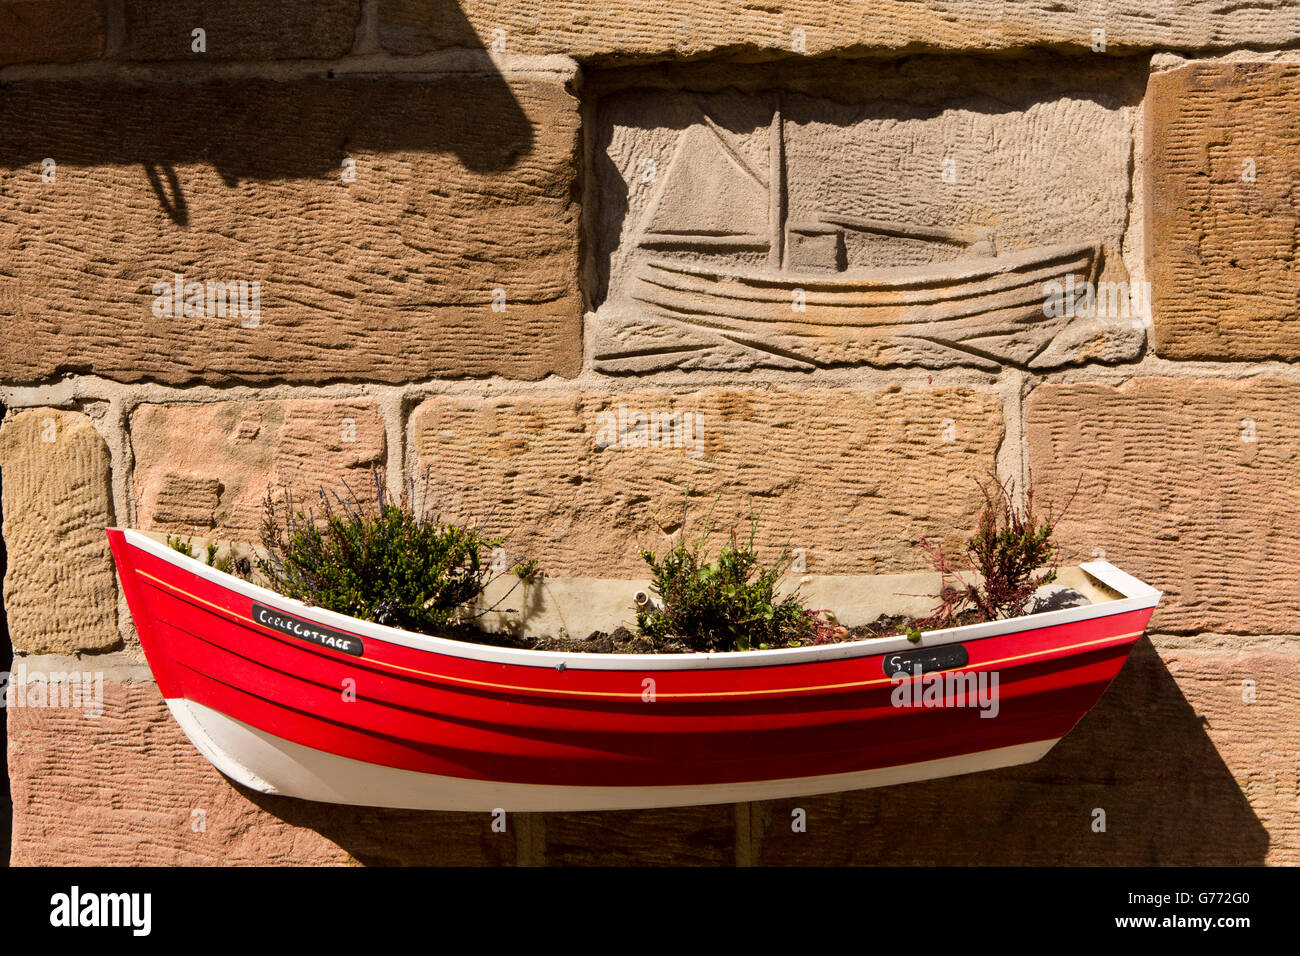 UK, England, Yorkshire, Staithes, High Street, Coble Cottage, red boat shaped flower planter - Stock Image